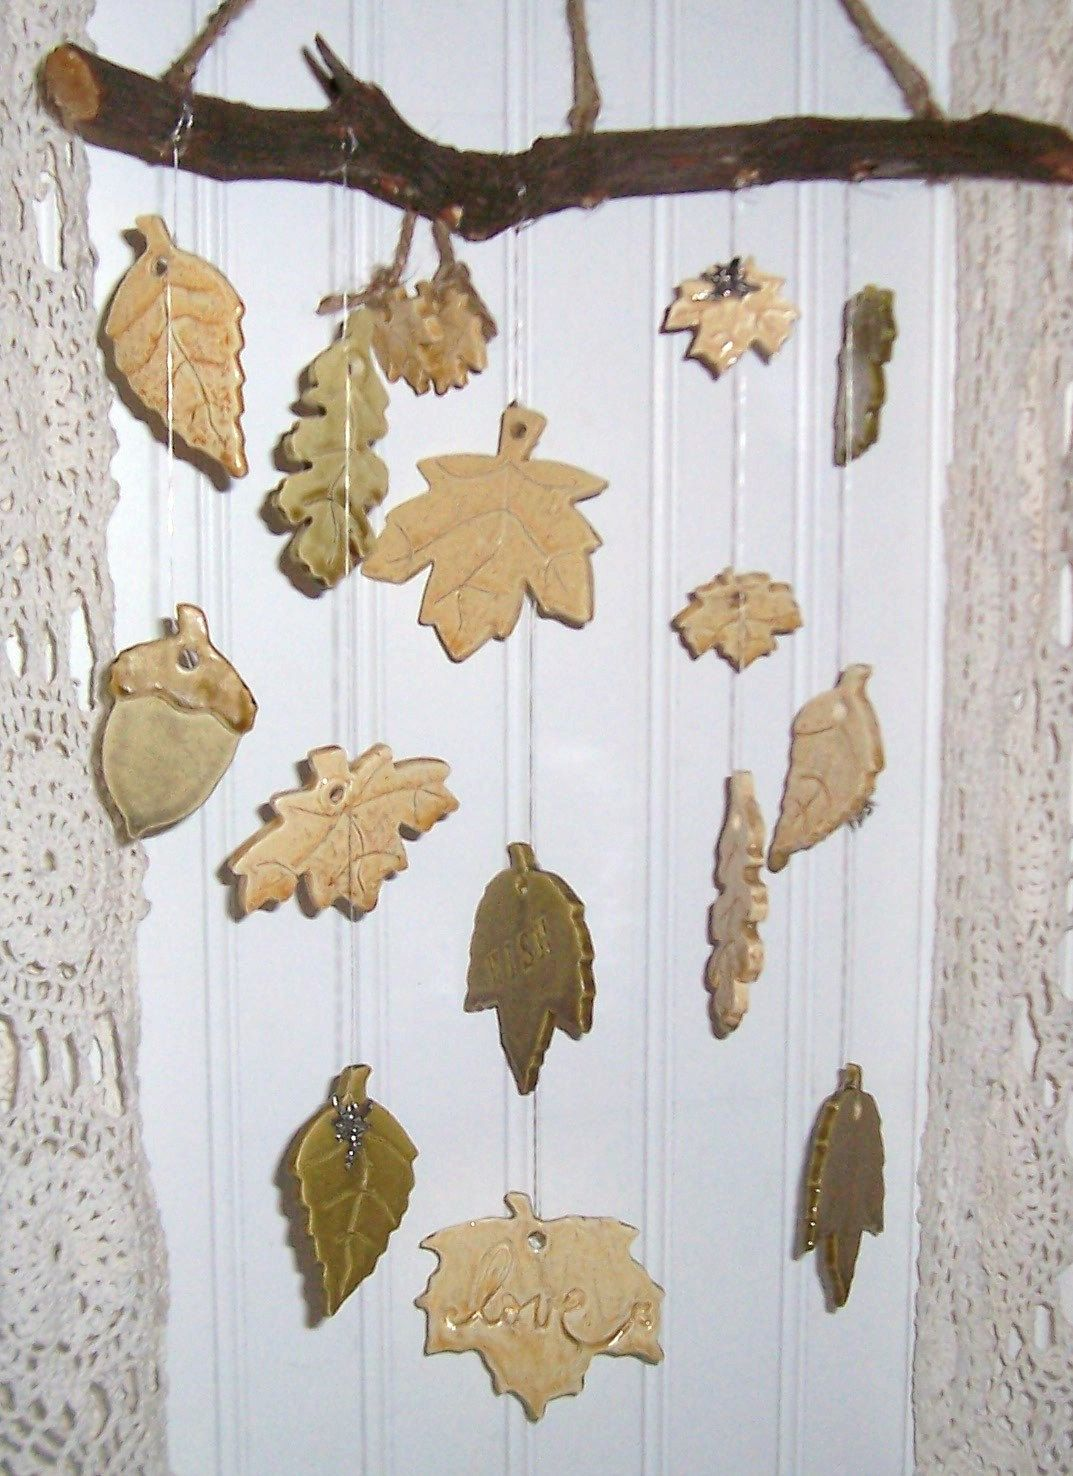 Clay wind chimes pretty little things that jingle and for Wind chime ideas